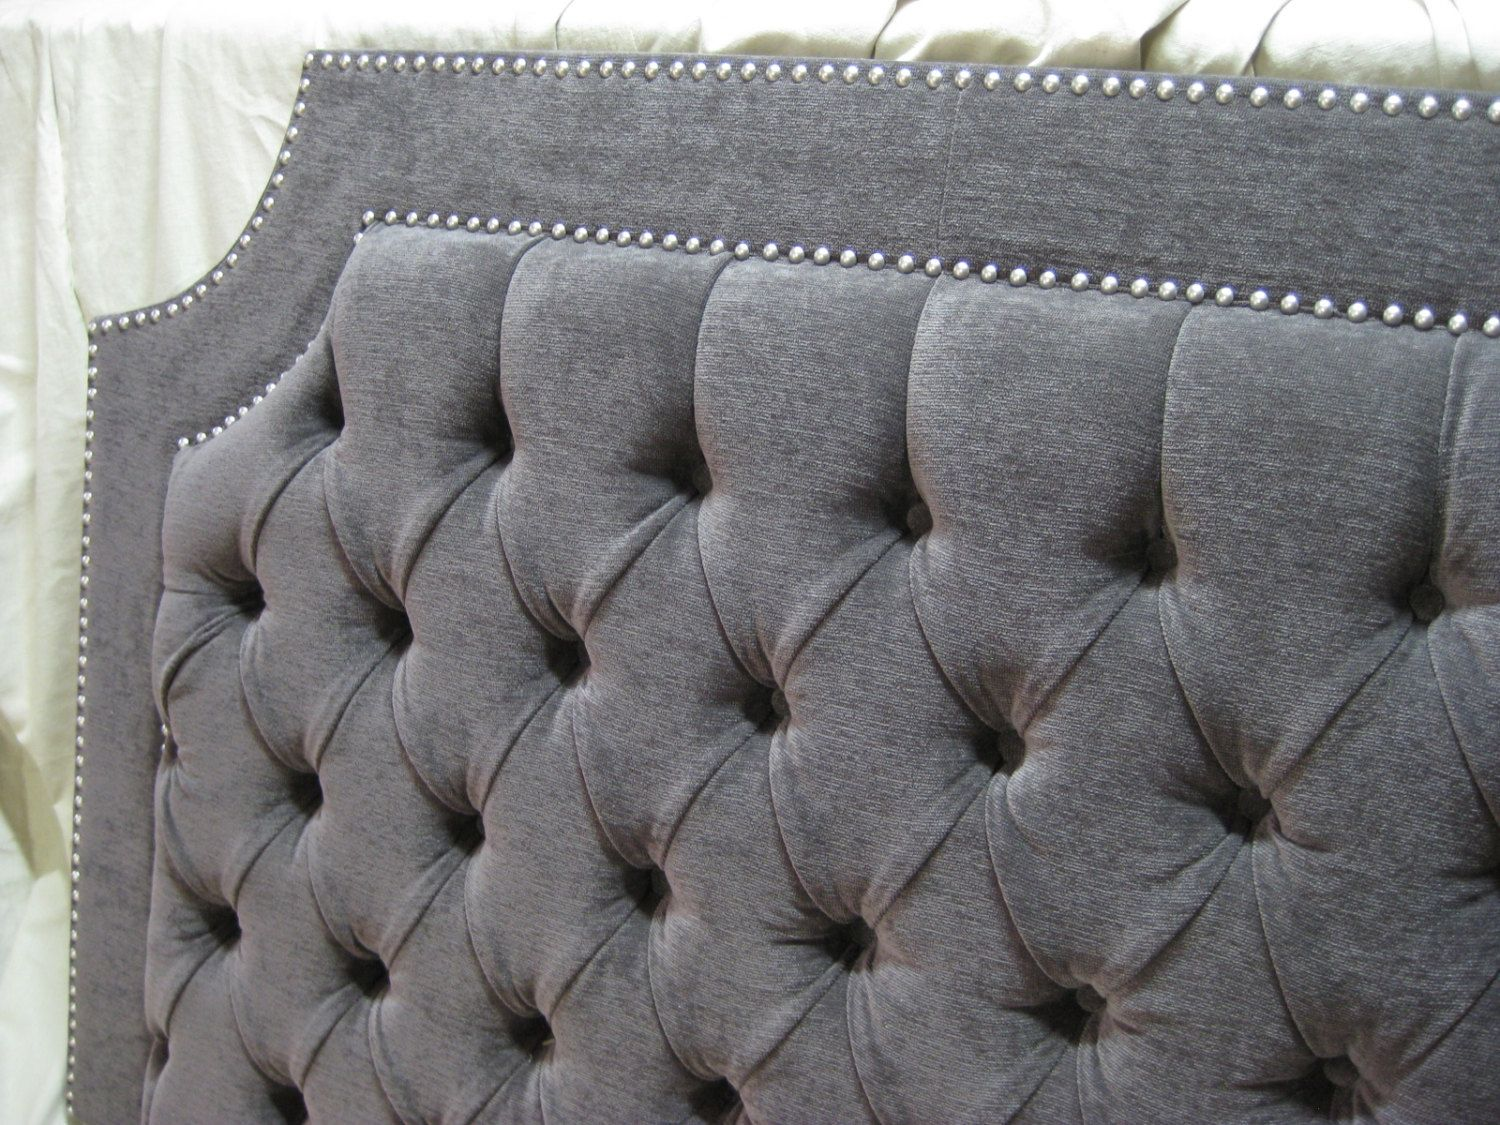 Gray Tufted Upholstered Headboard with Nickel Nailheads - Queen ...